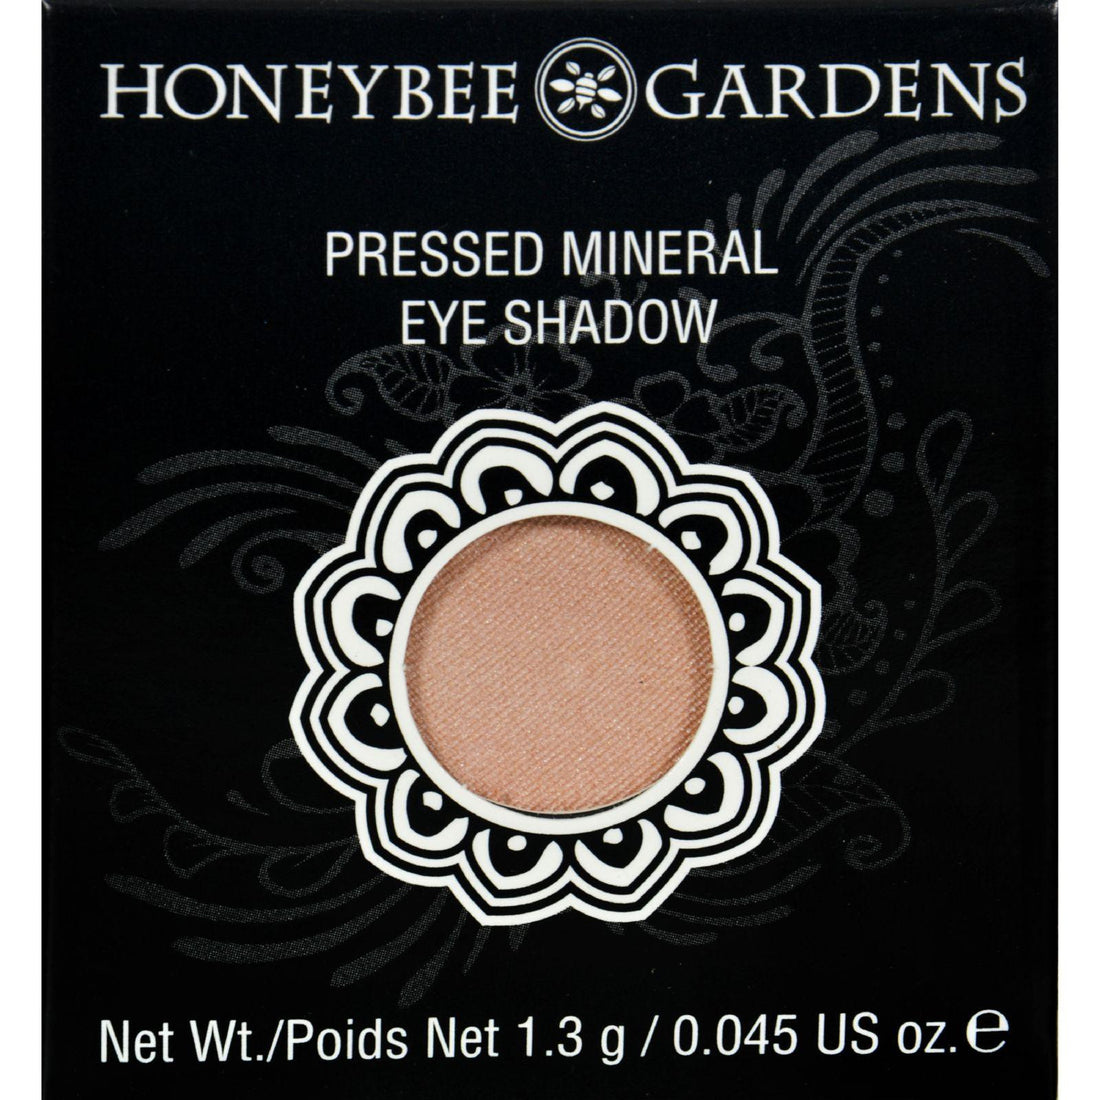 Mother Mantis: Honeybee Gardens Eye Shadow - Pressed Mineral - Ninjakitty - 1.3 G - 1 Case Honeybee Gardens